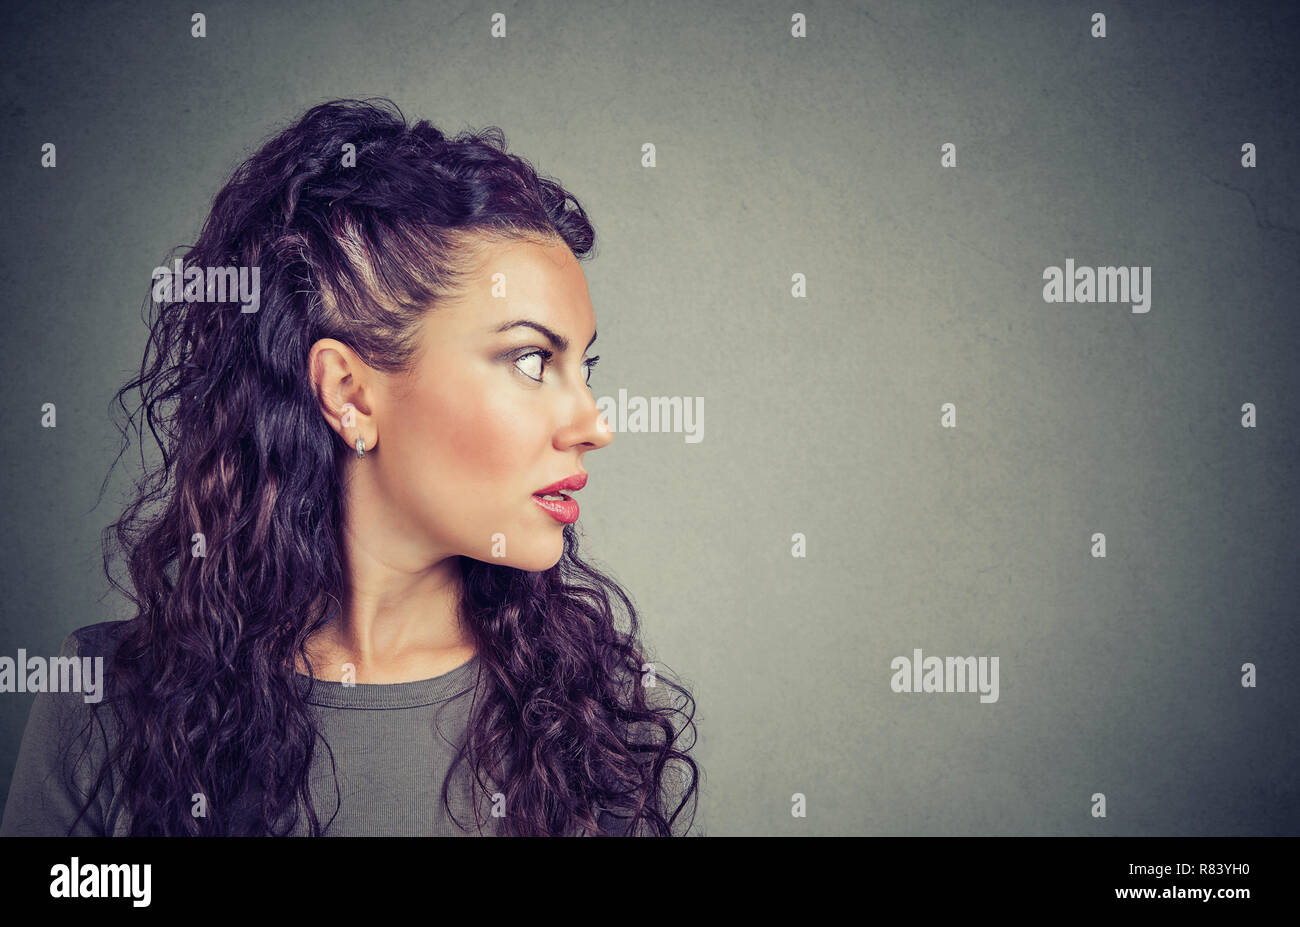 Closeup side view profile portrait woman talking with open mouth isolated on gray wall background. Face expression. Communication concept - Stock Image